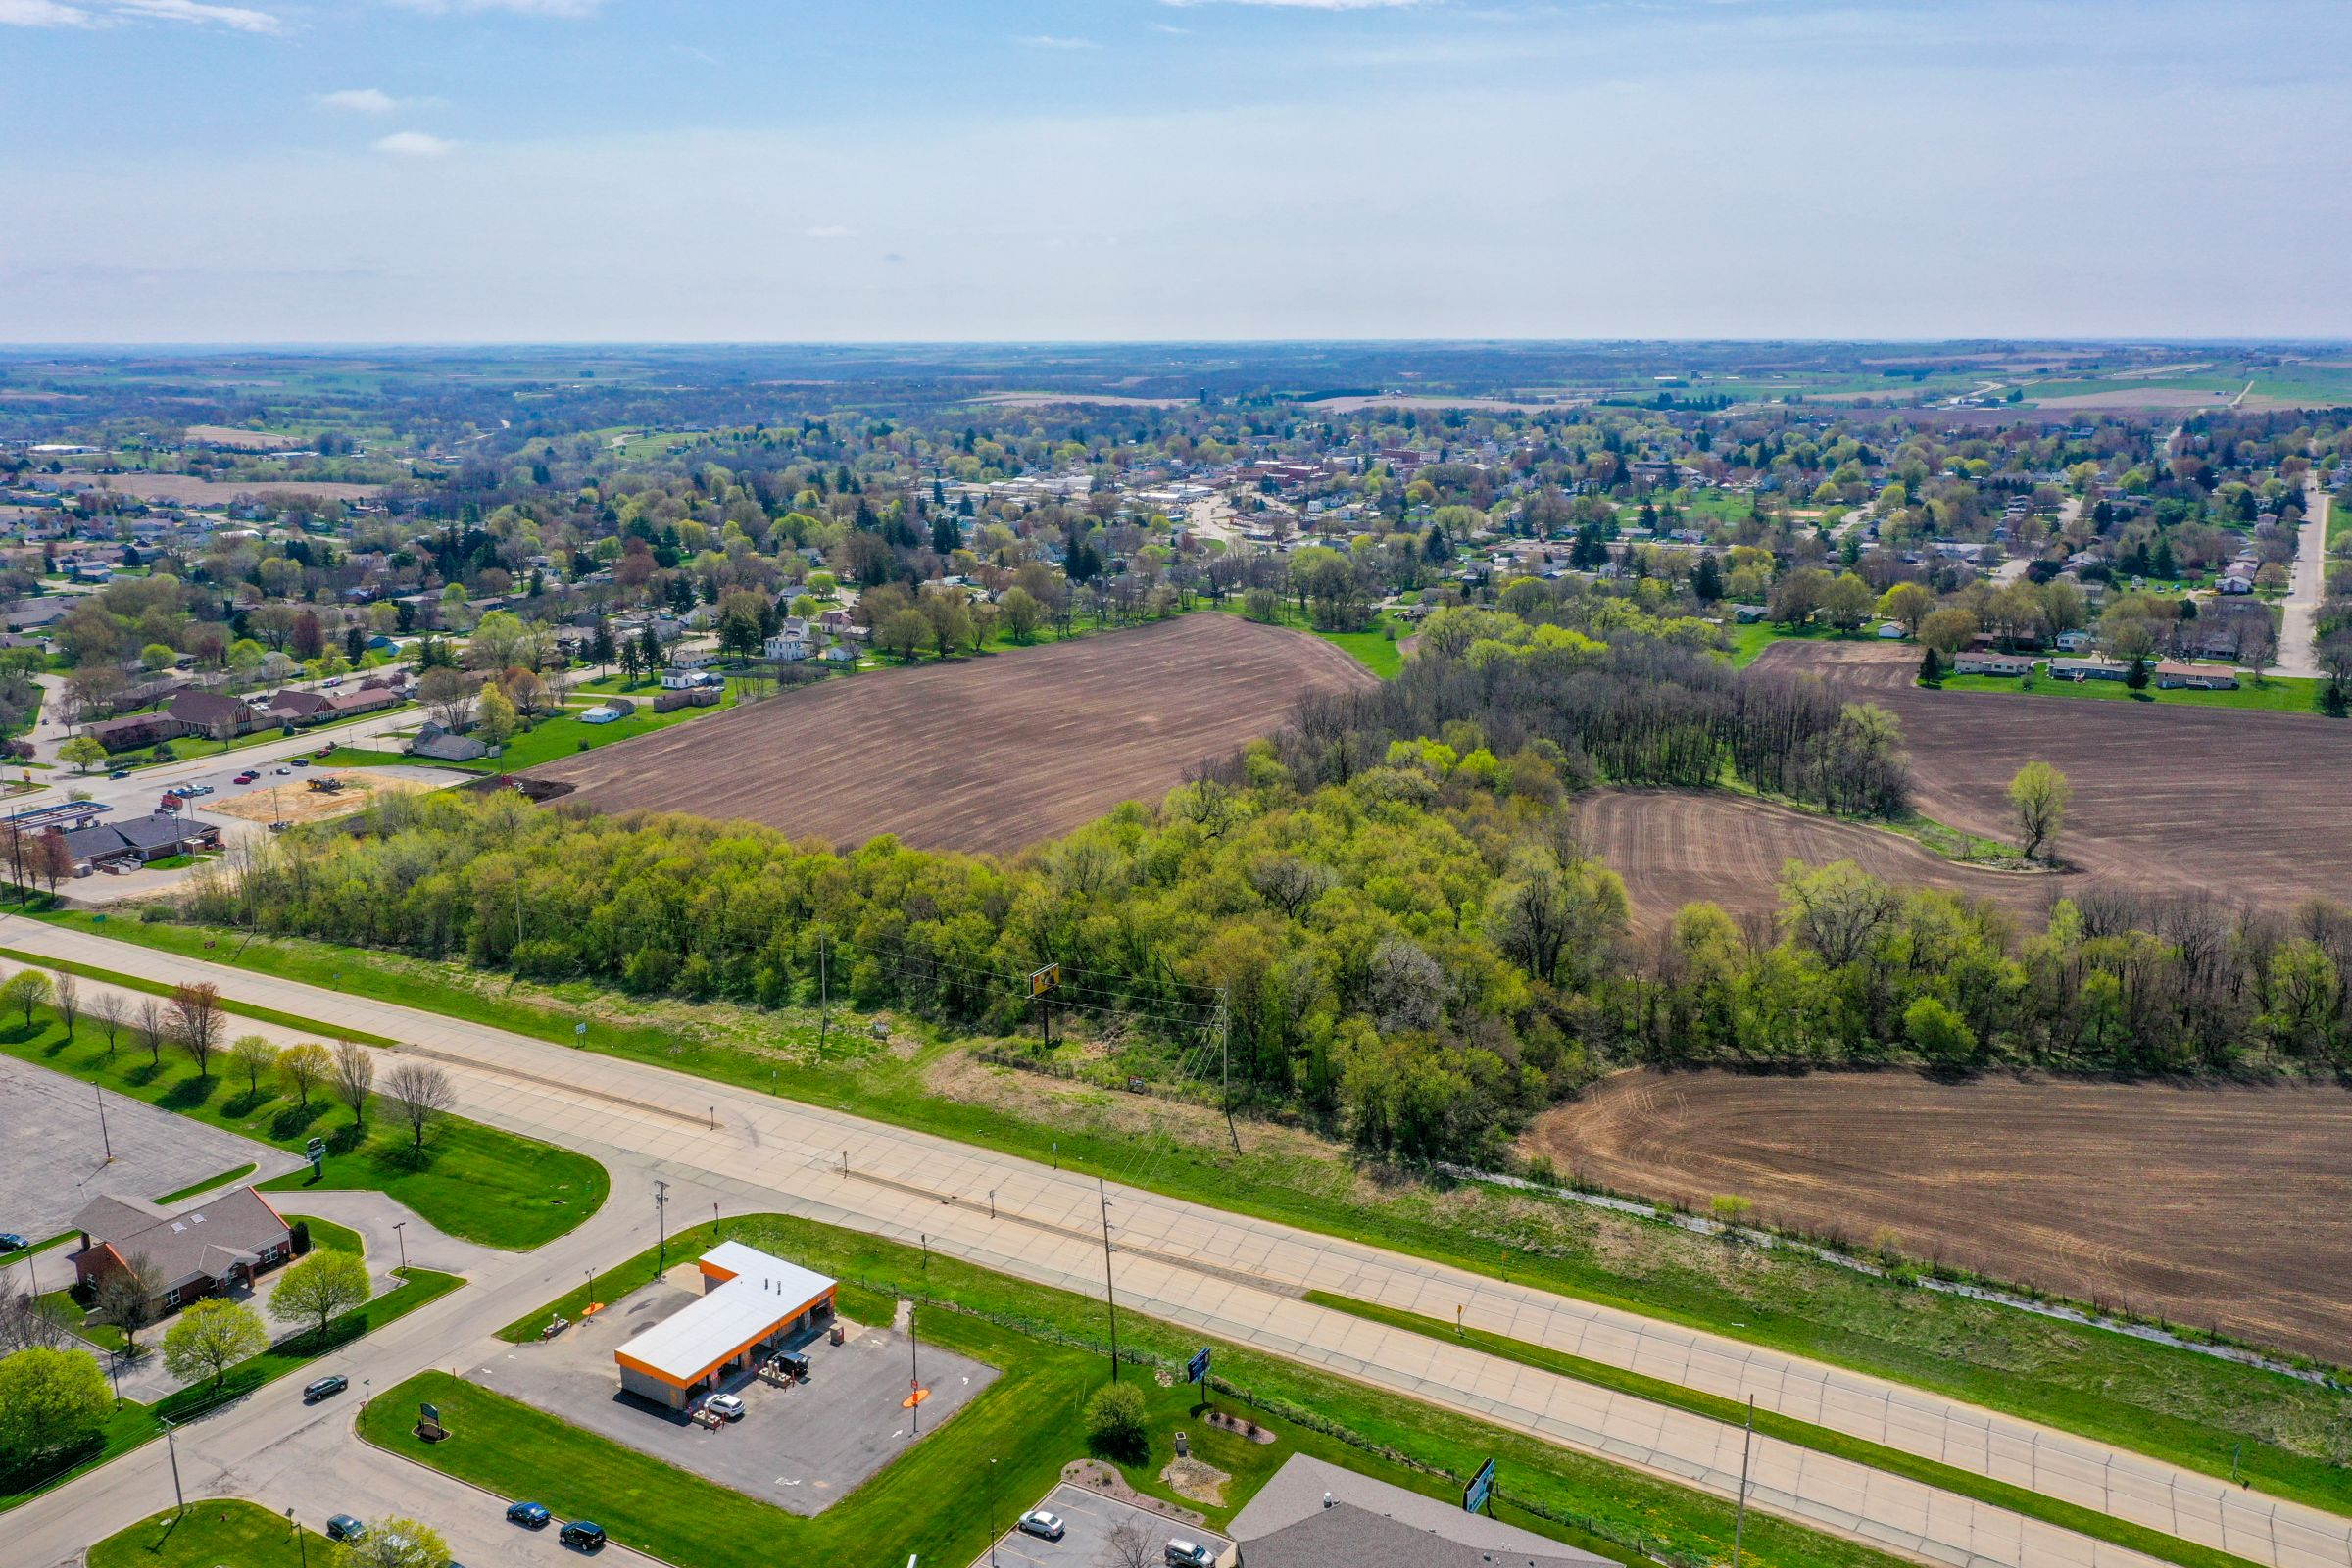 development-land-commercial-iowa-county-wisconsin-152-acres-listing-number-15474-2-2021-05-18-164824.jpg